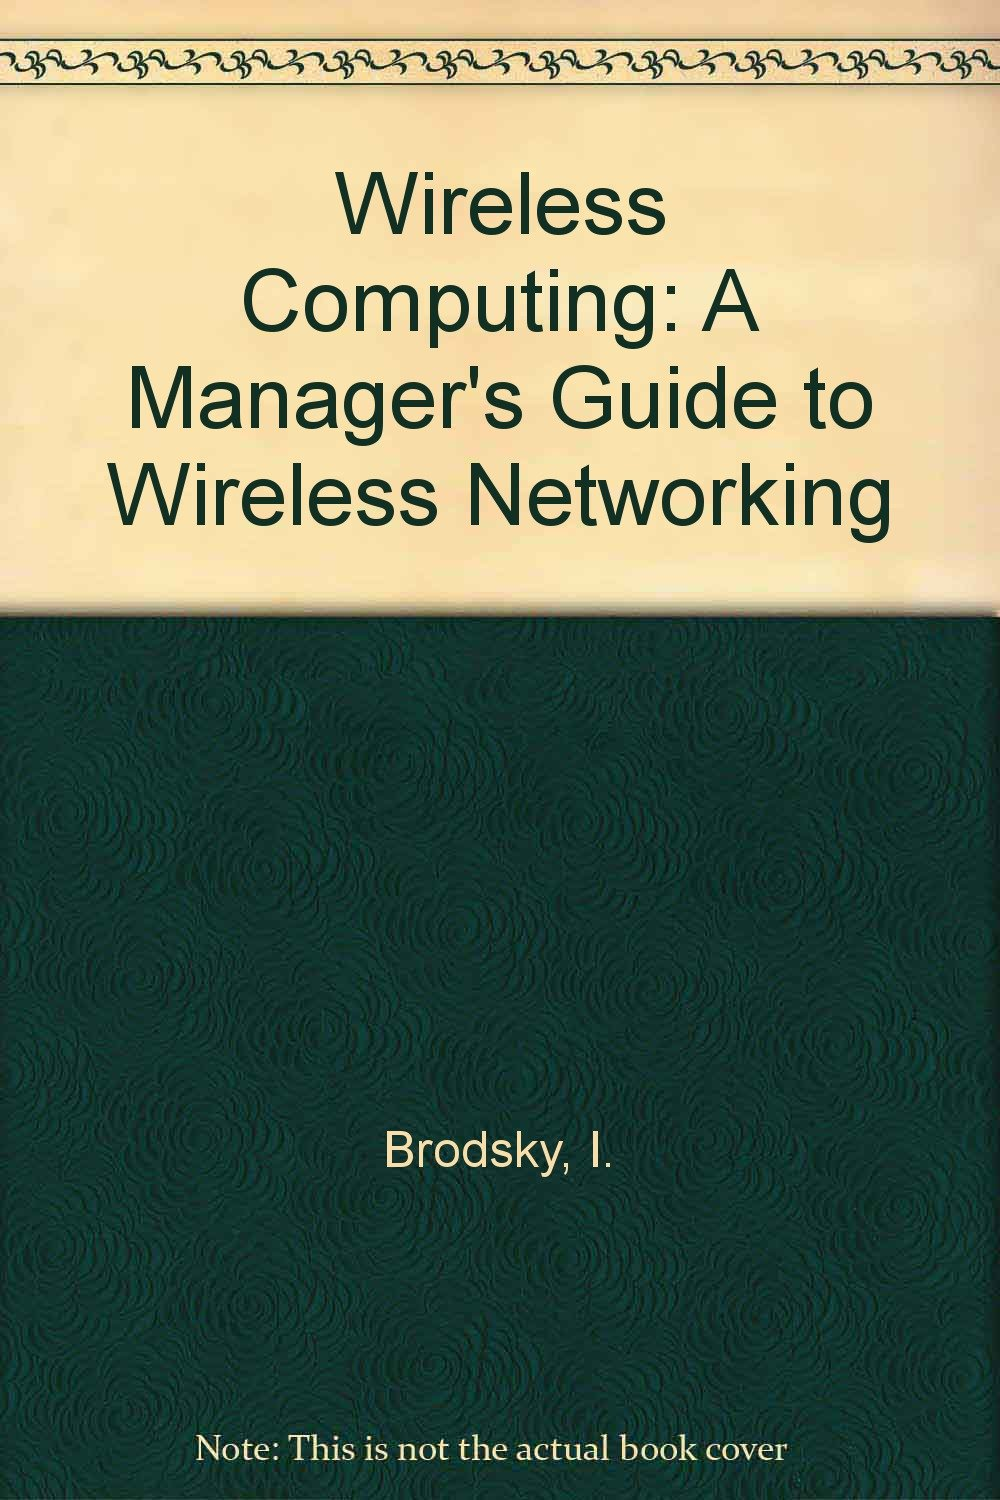 Wireless Computing: A Manager's Guide to Wireless Networking  (Communications): Ira Brodsky: 9780442019129: Amazon.com: Books